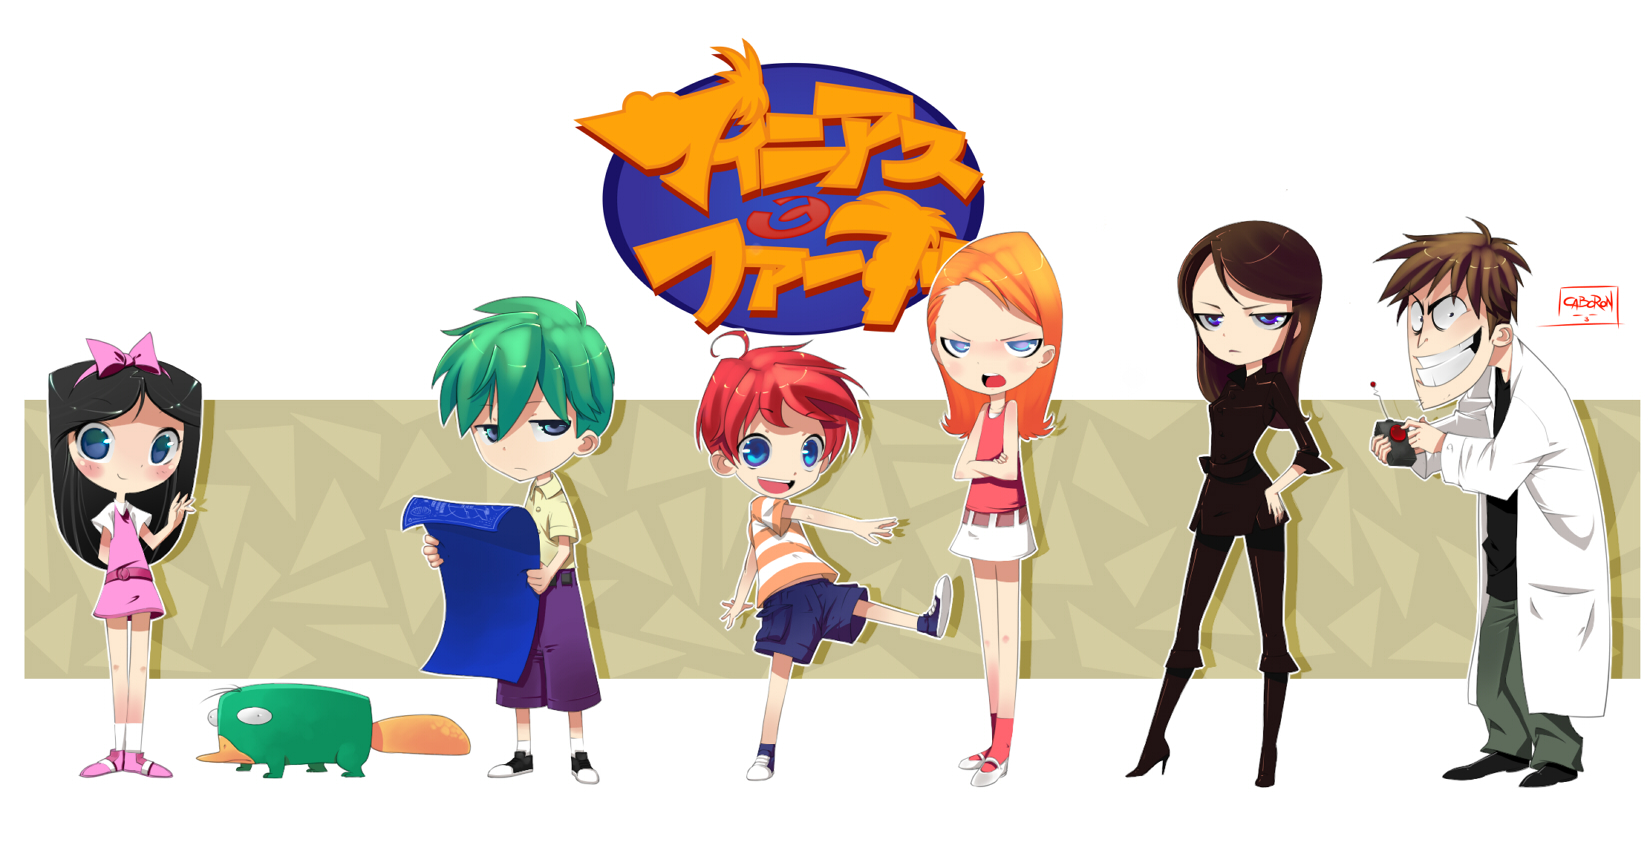 Phineas and ferb anime